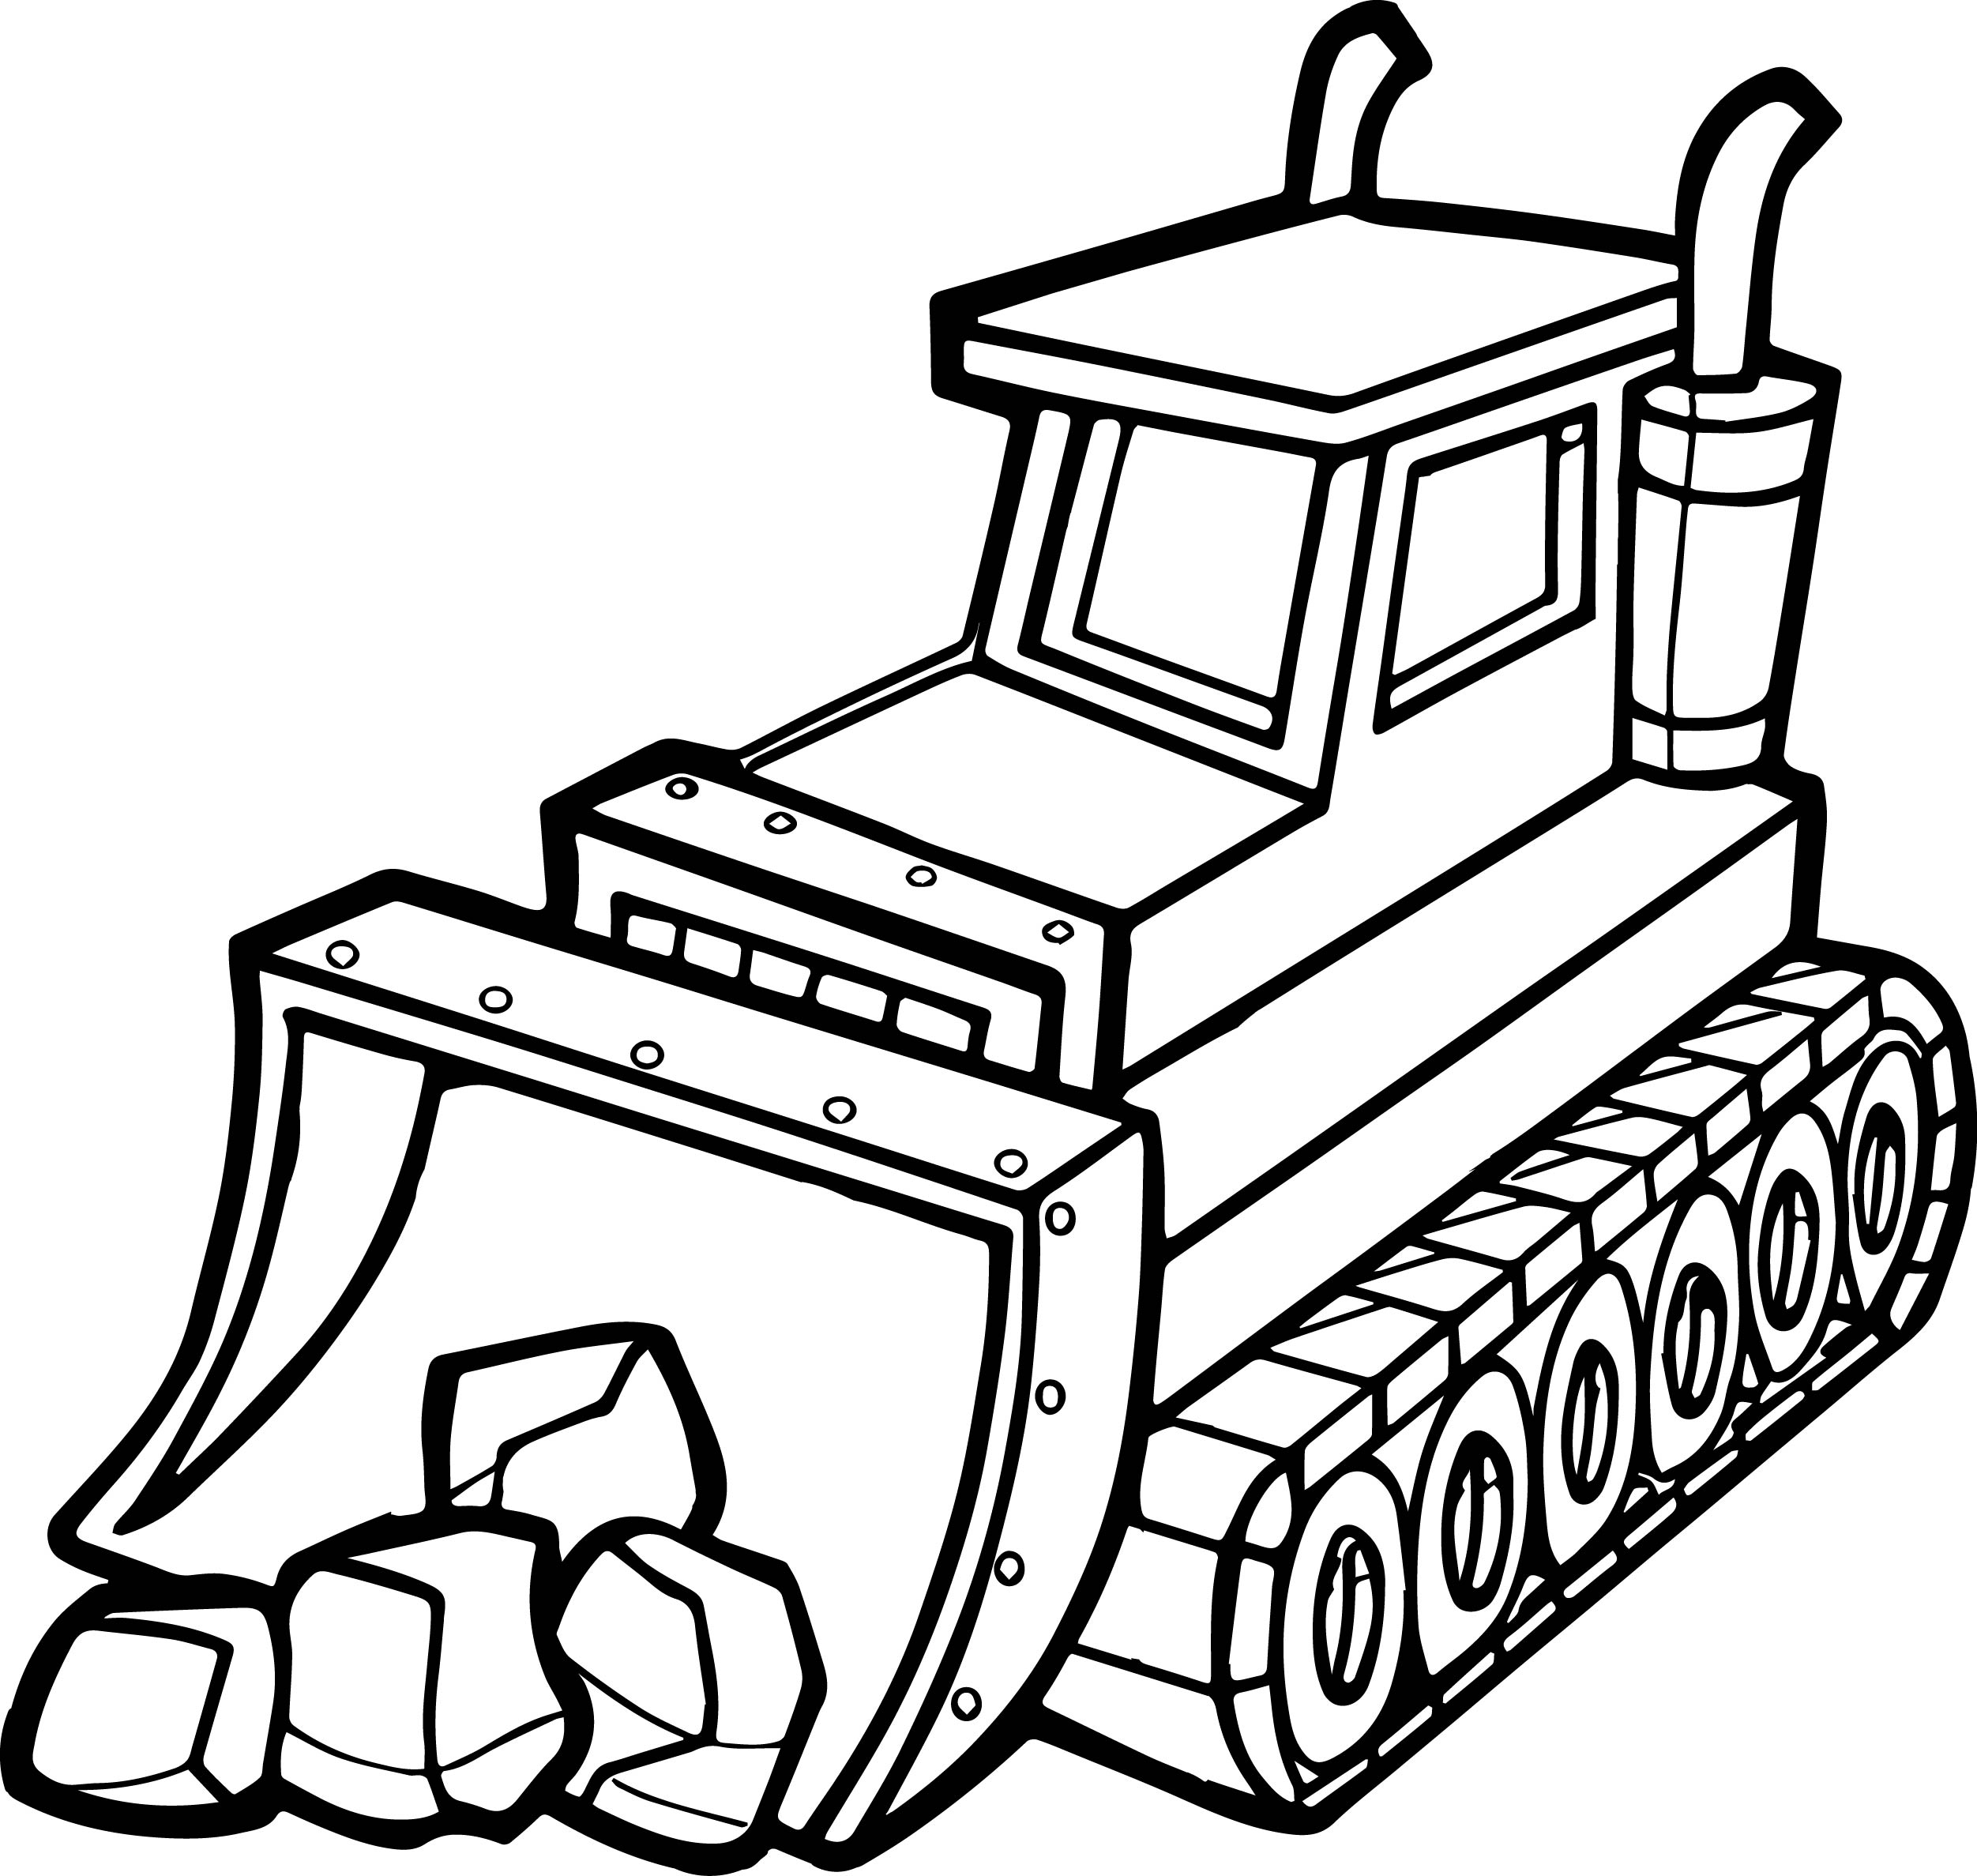 Best Stone Shovel Bulldozer Coloring Page Wecoloringpage